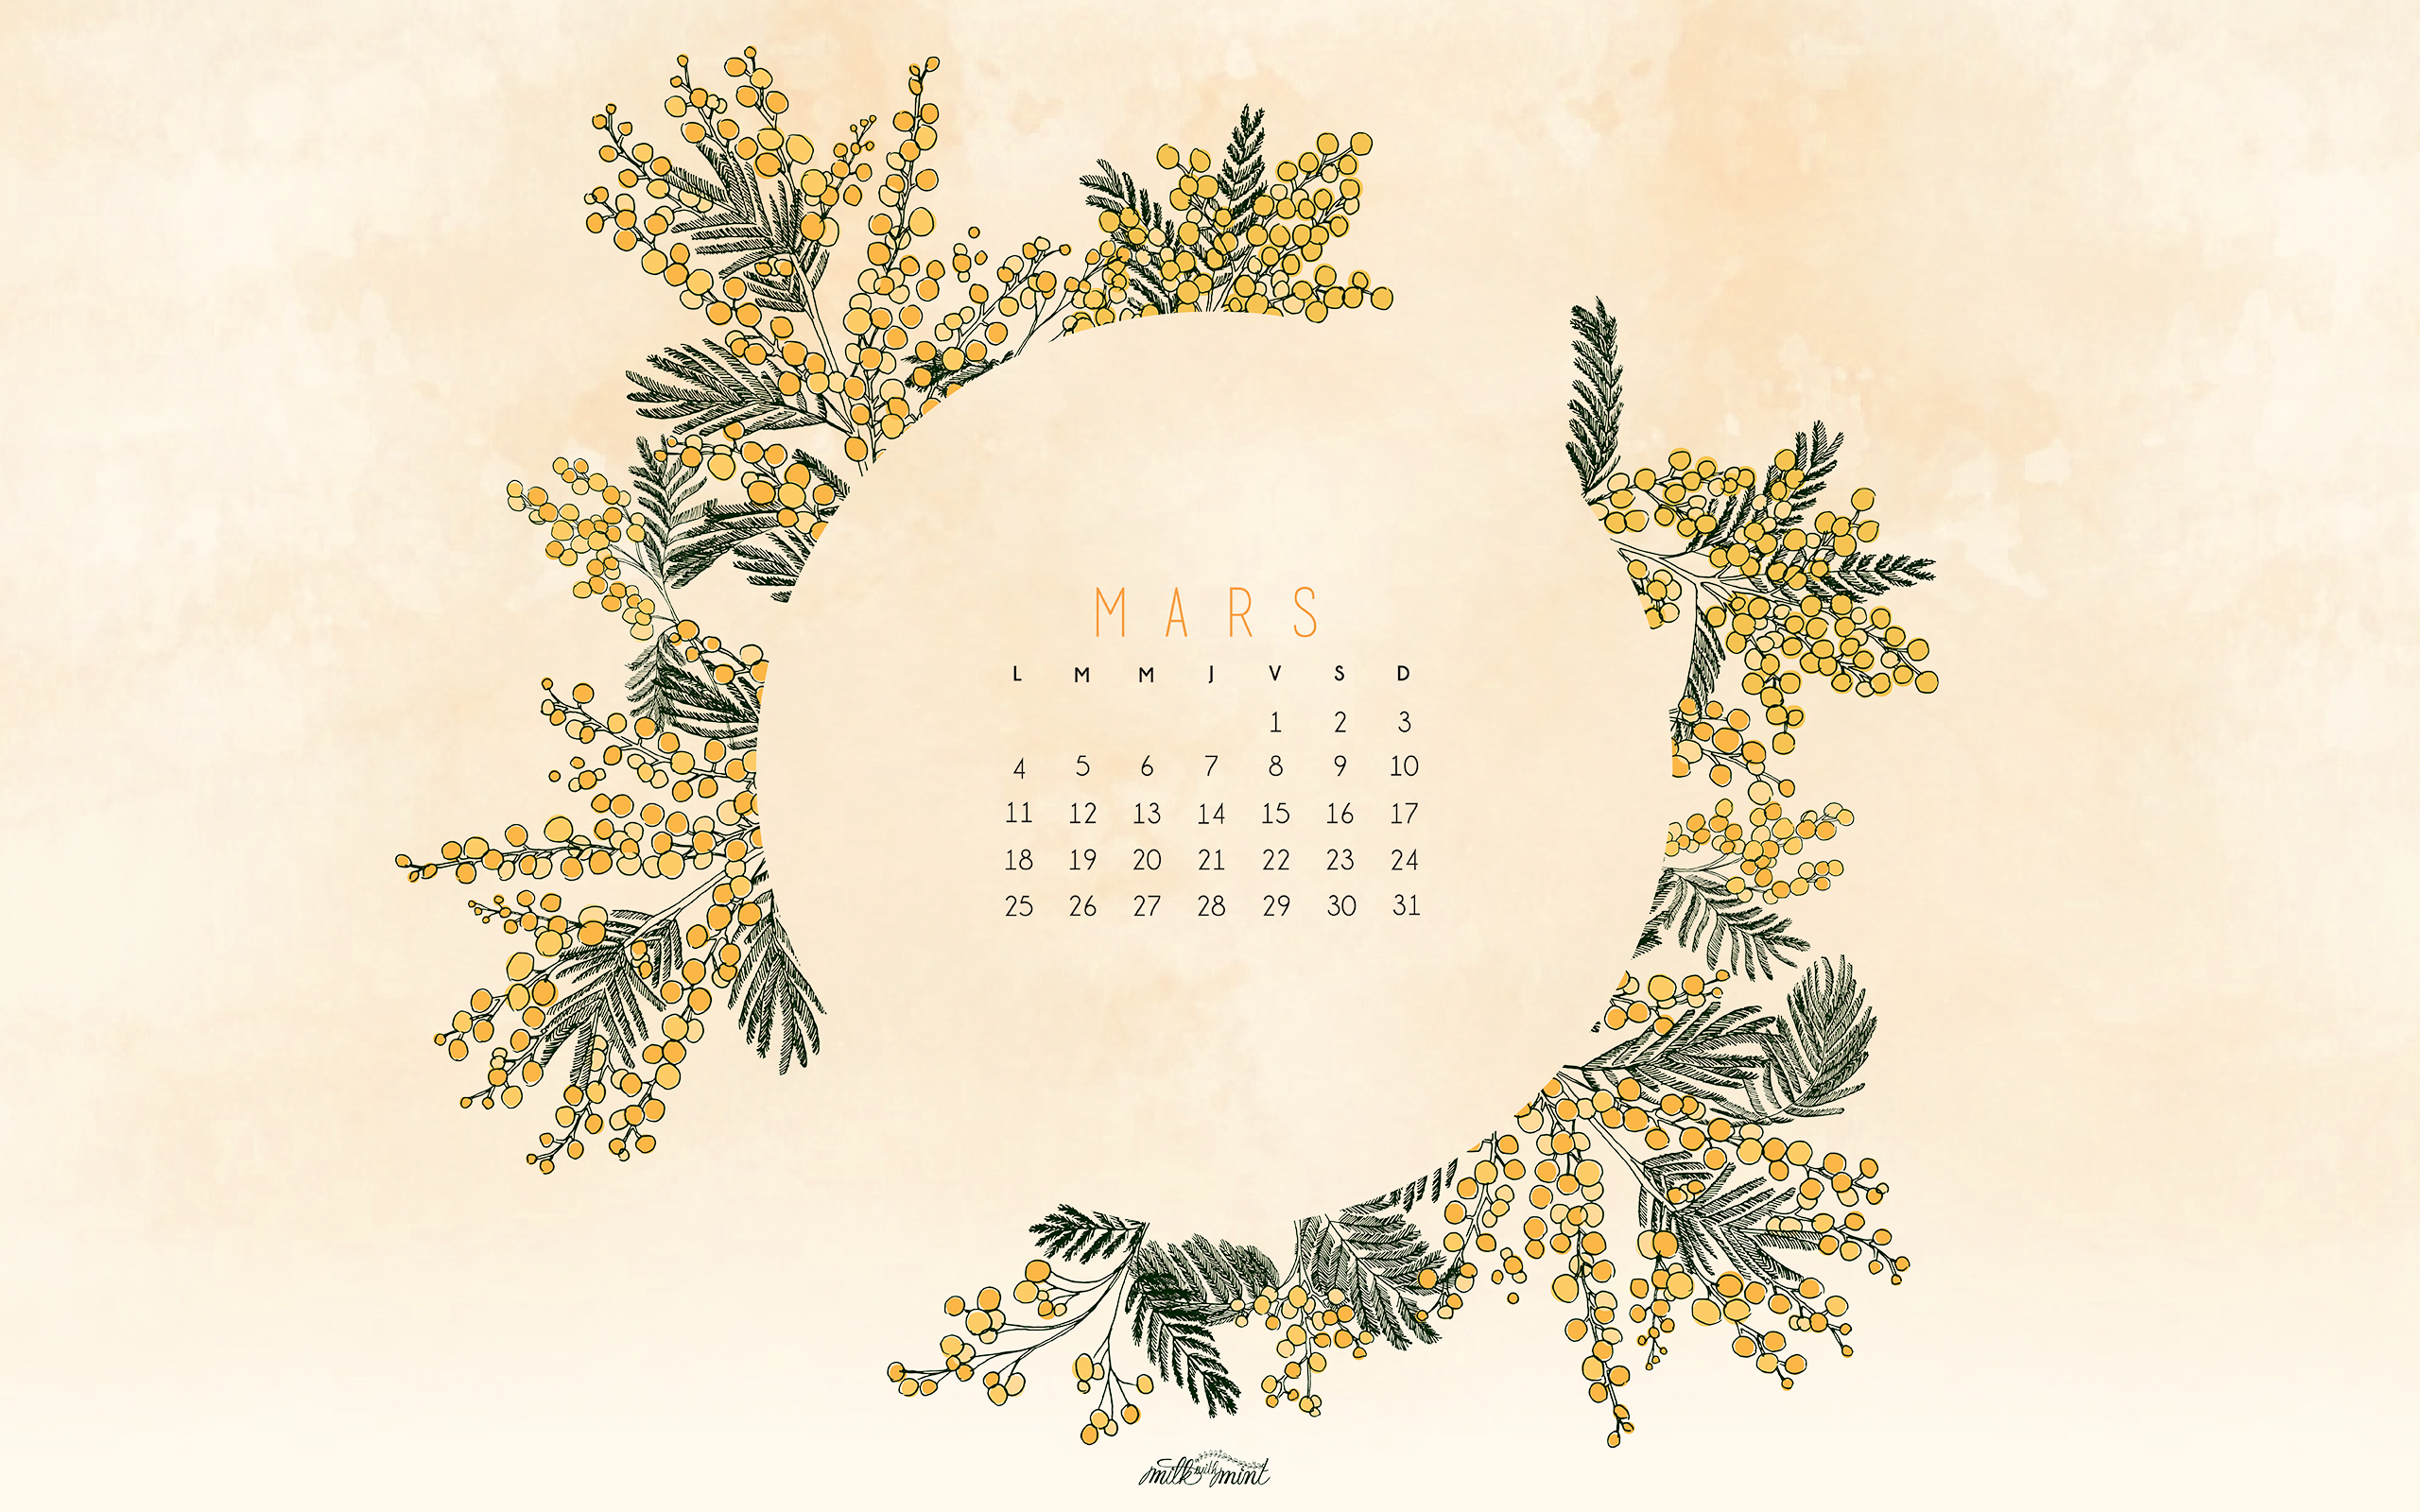 Calendriers Fond D Ecran Mars 2019 March 2019 Wallpaper